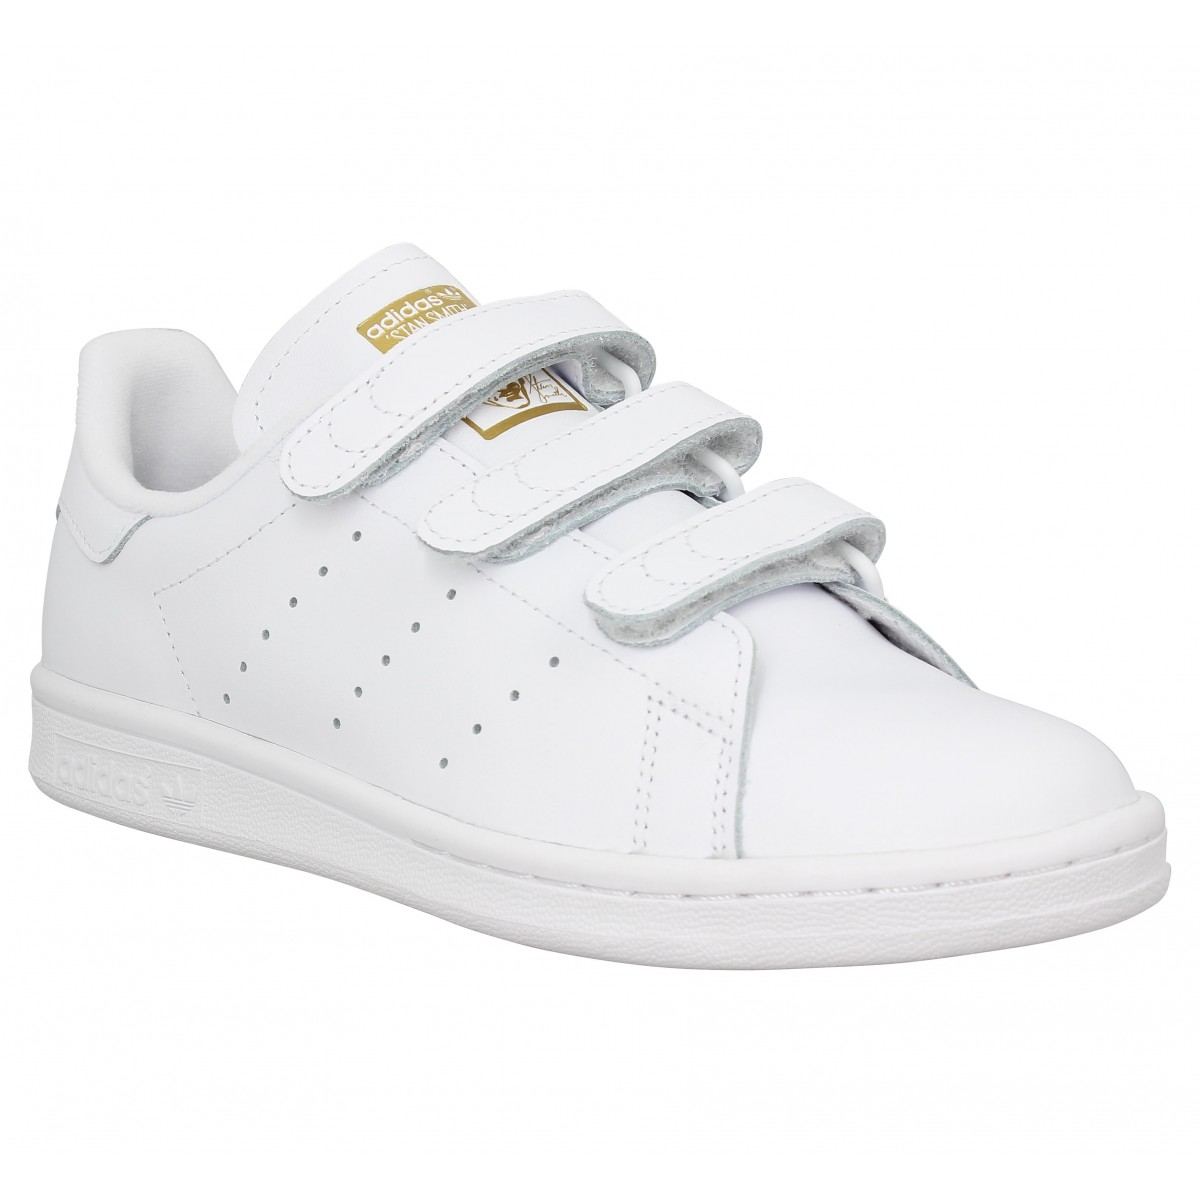 revendeur 8f9e2 cce07 adidas stan smith a scratch